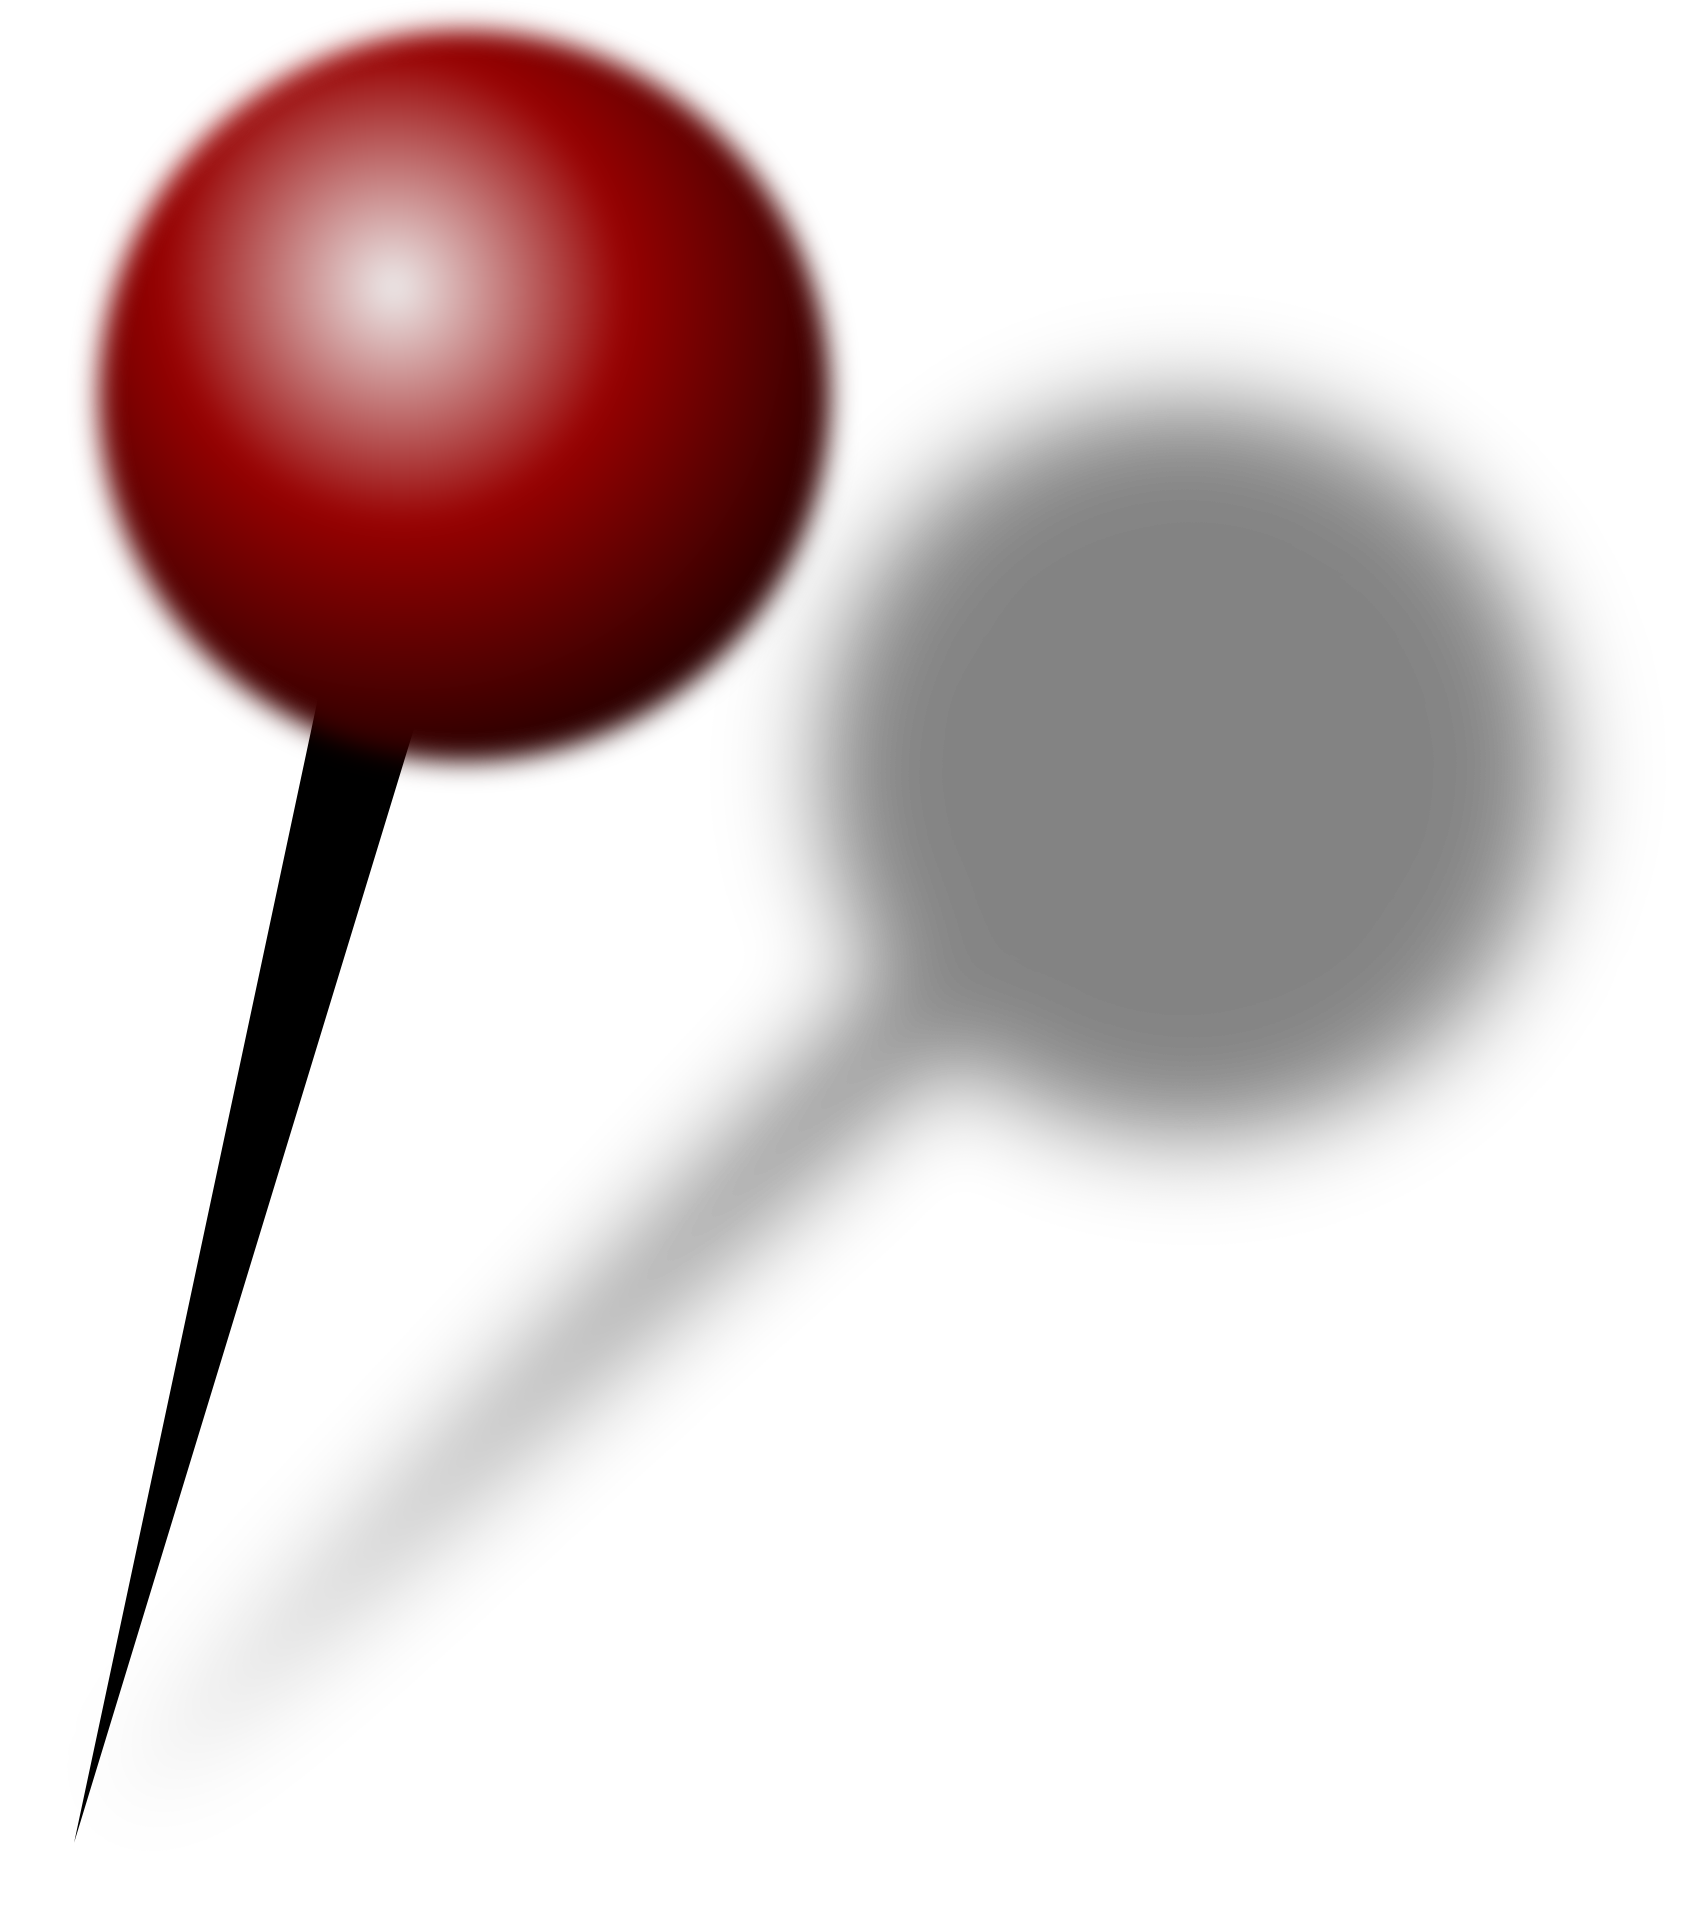 Chalk pushpin png. File red push pin